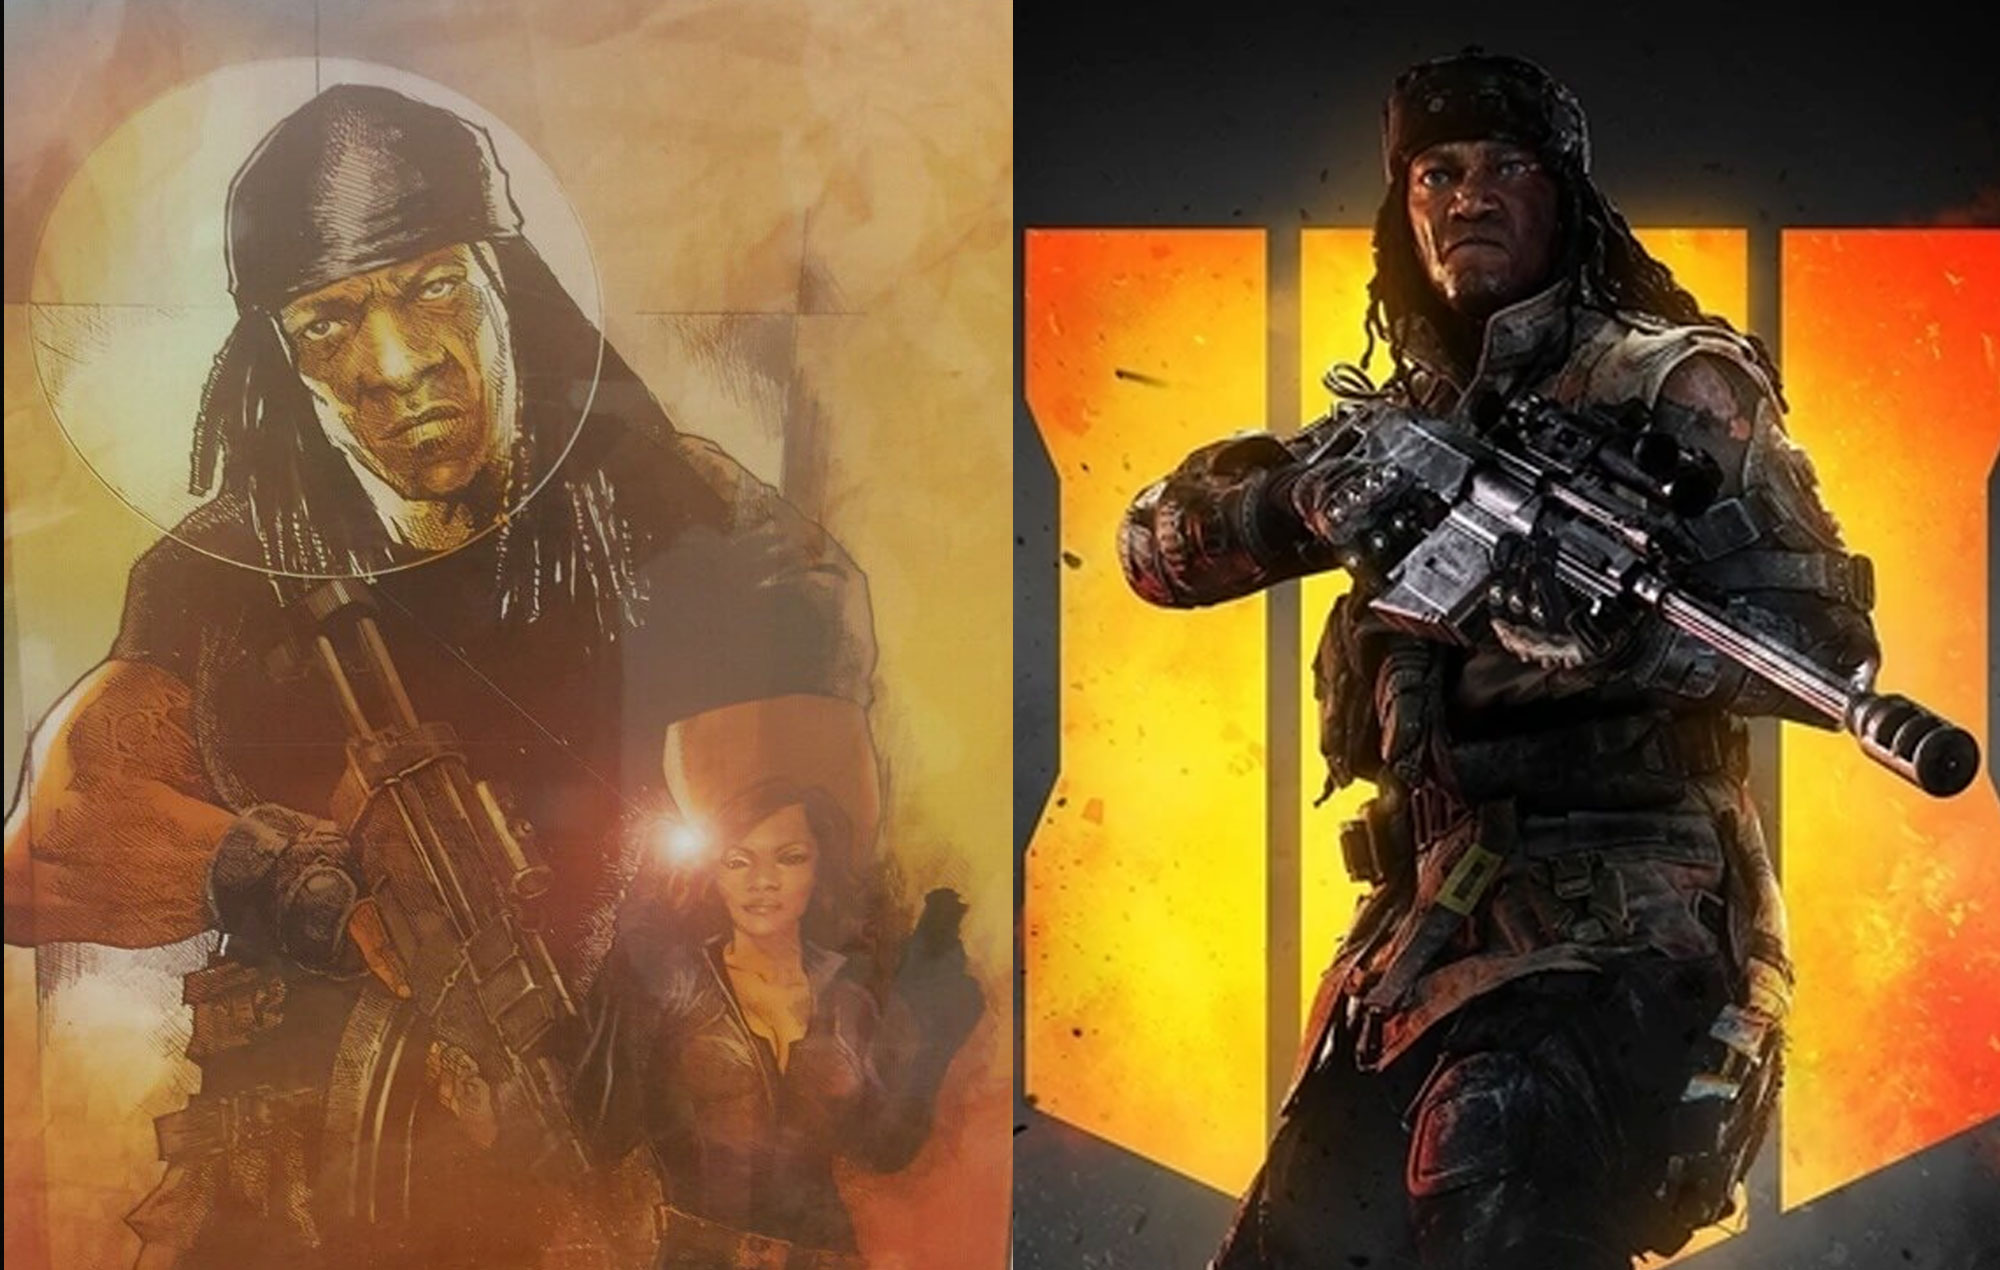 G.I. Bro and Prophet from Call Of Duty Black Ops 4. Credit: Booker T. Huffman/Activision